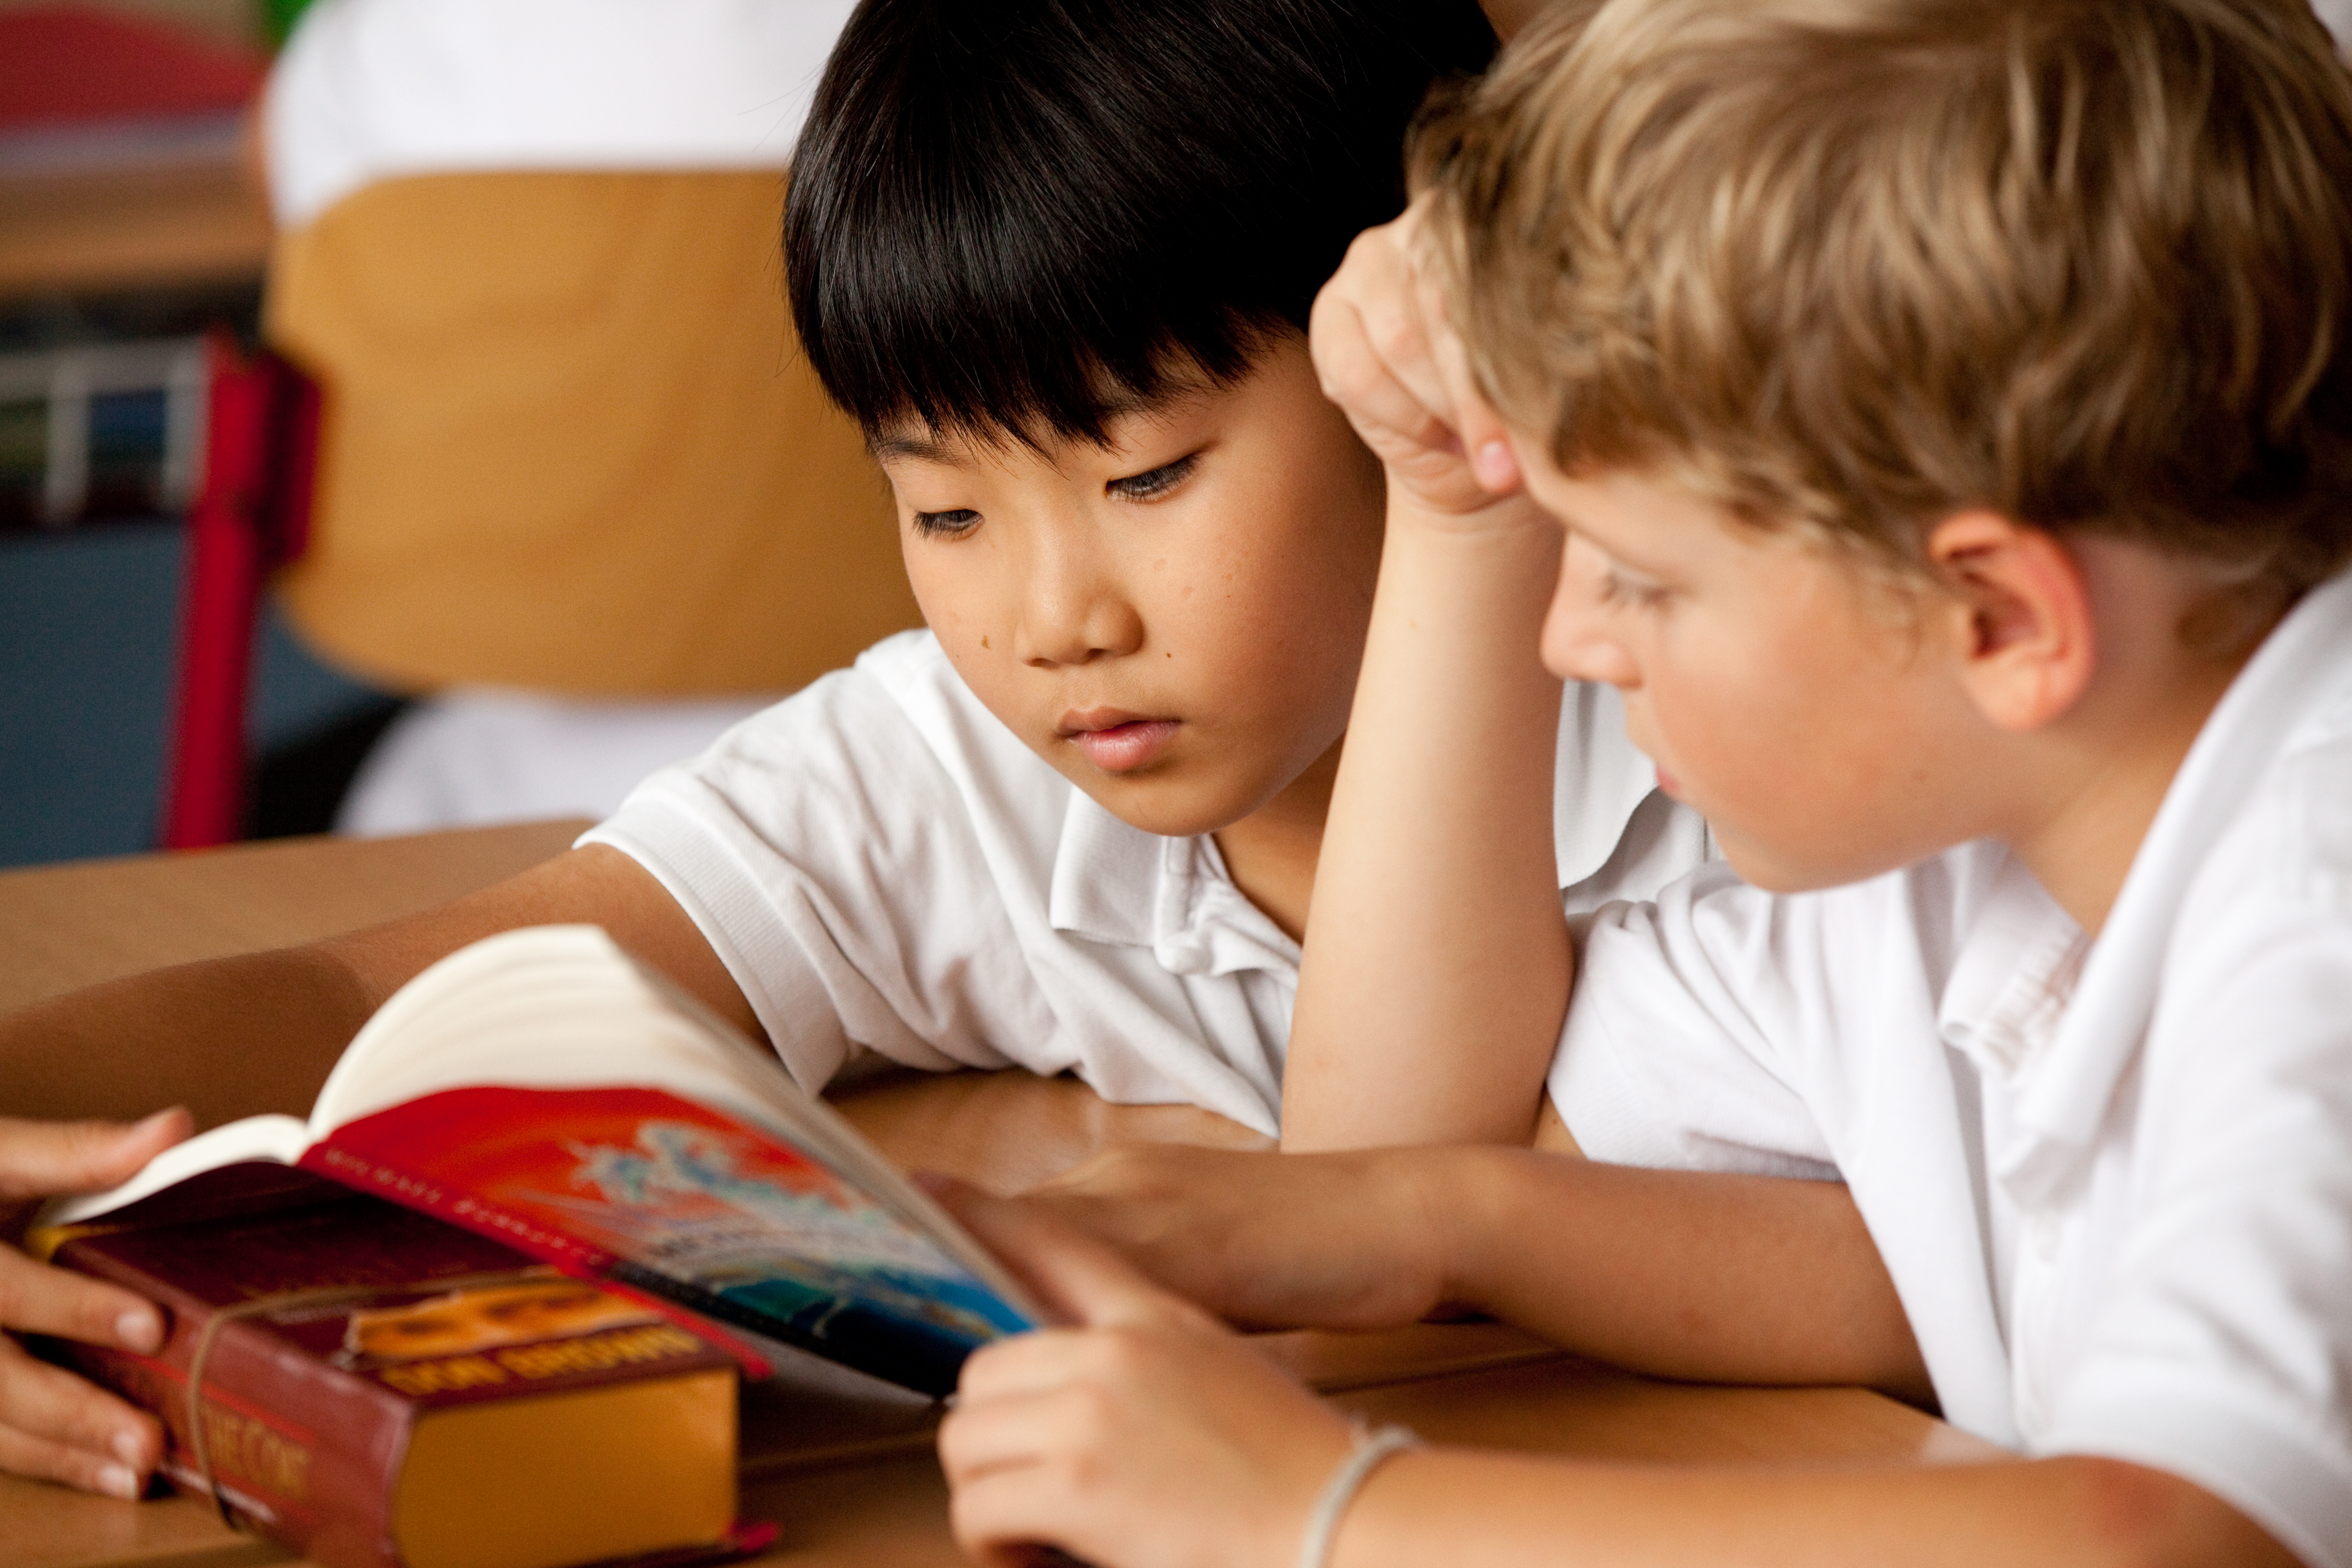 discovering another world in books nord anglia education from the british school of washington and together the support of the education team we put together the first global library last year